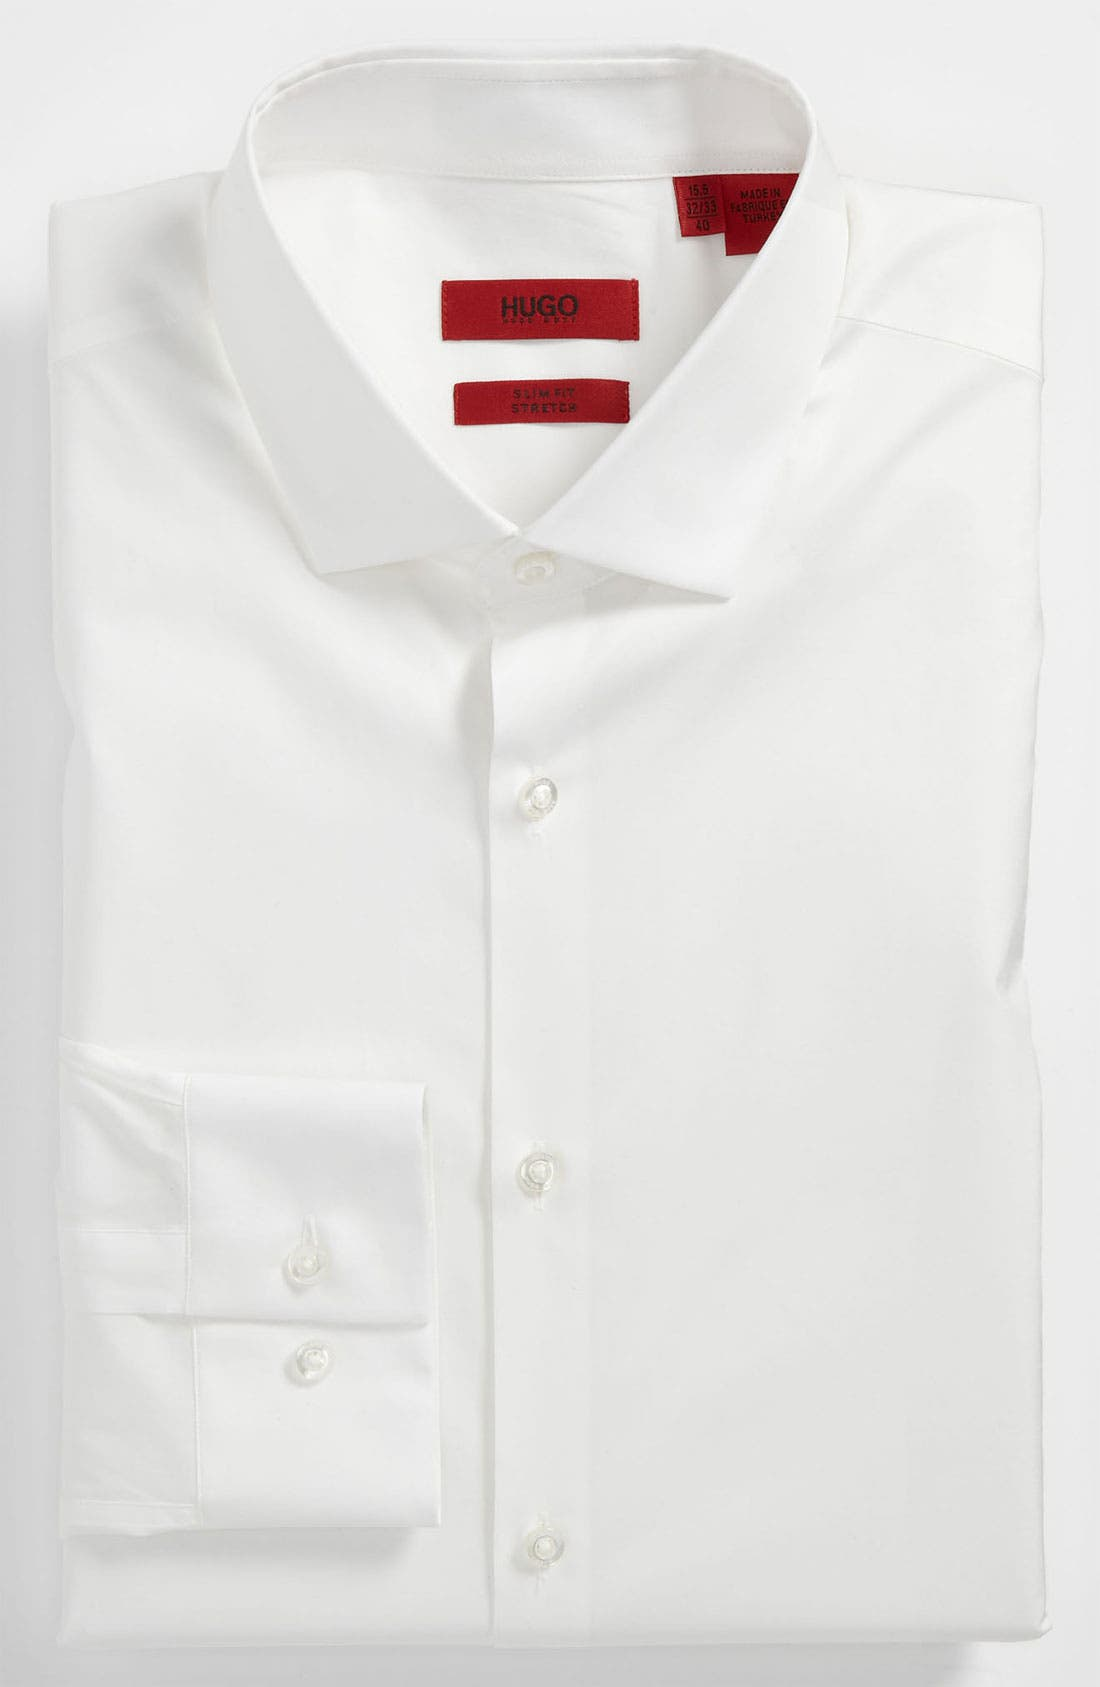 Main Image - HUGO Slim Fit Cotton Stretch Dress Shirt